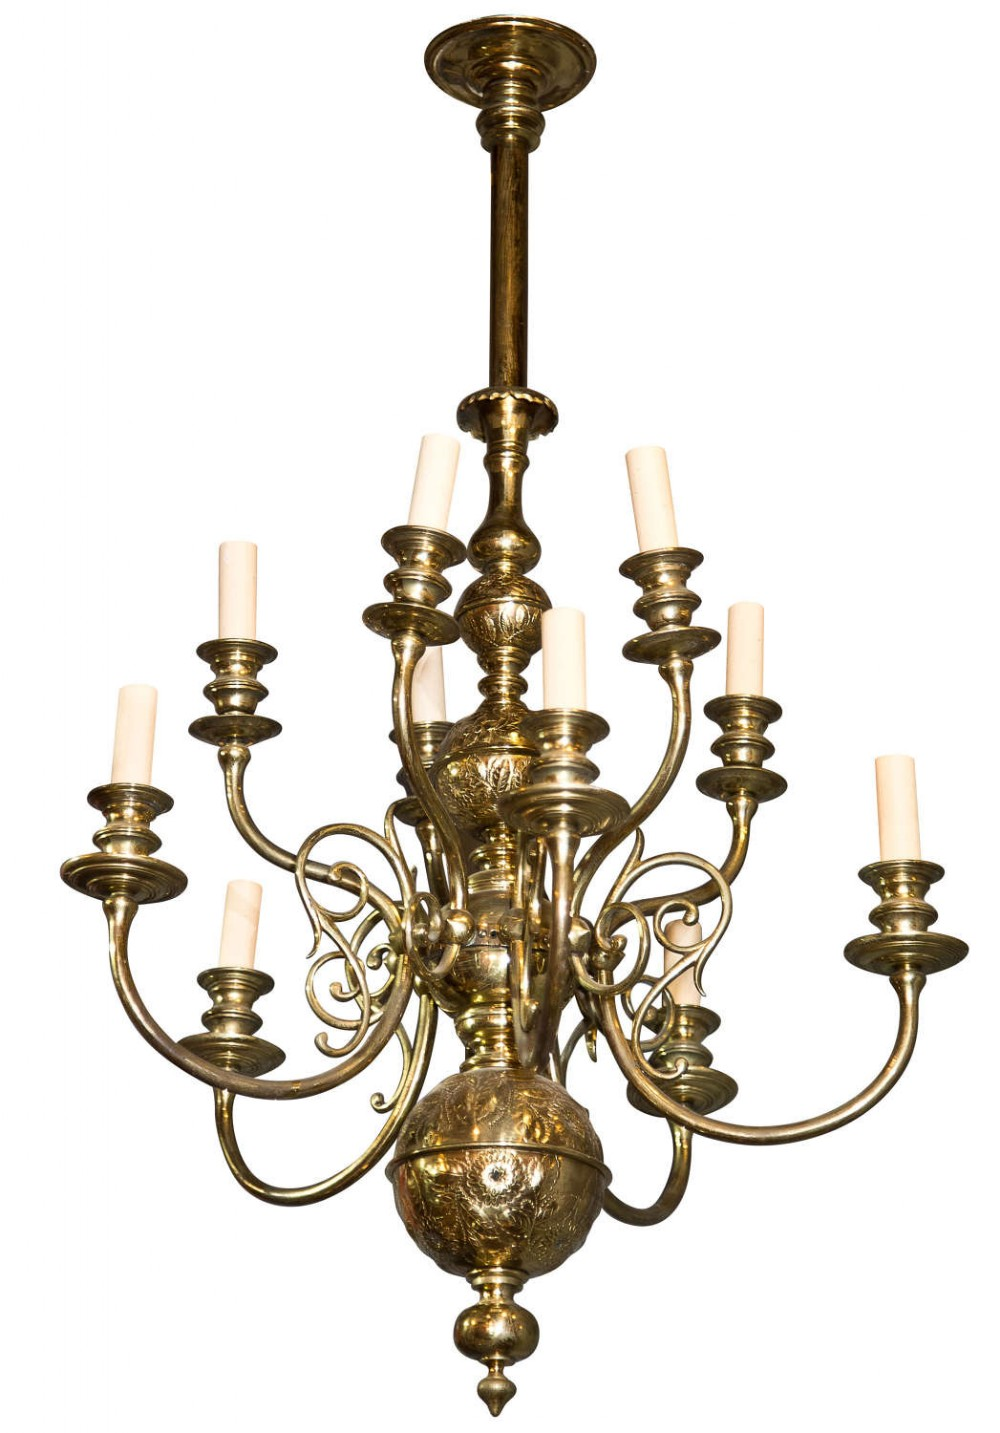 brass dutch style 2 tier chandelier with engraved decoration 10 arms